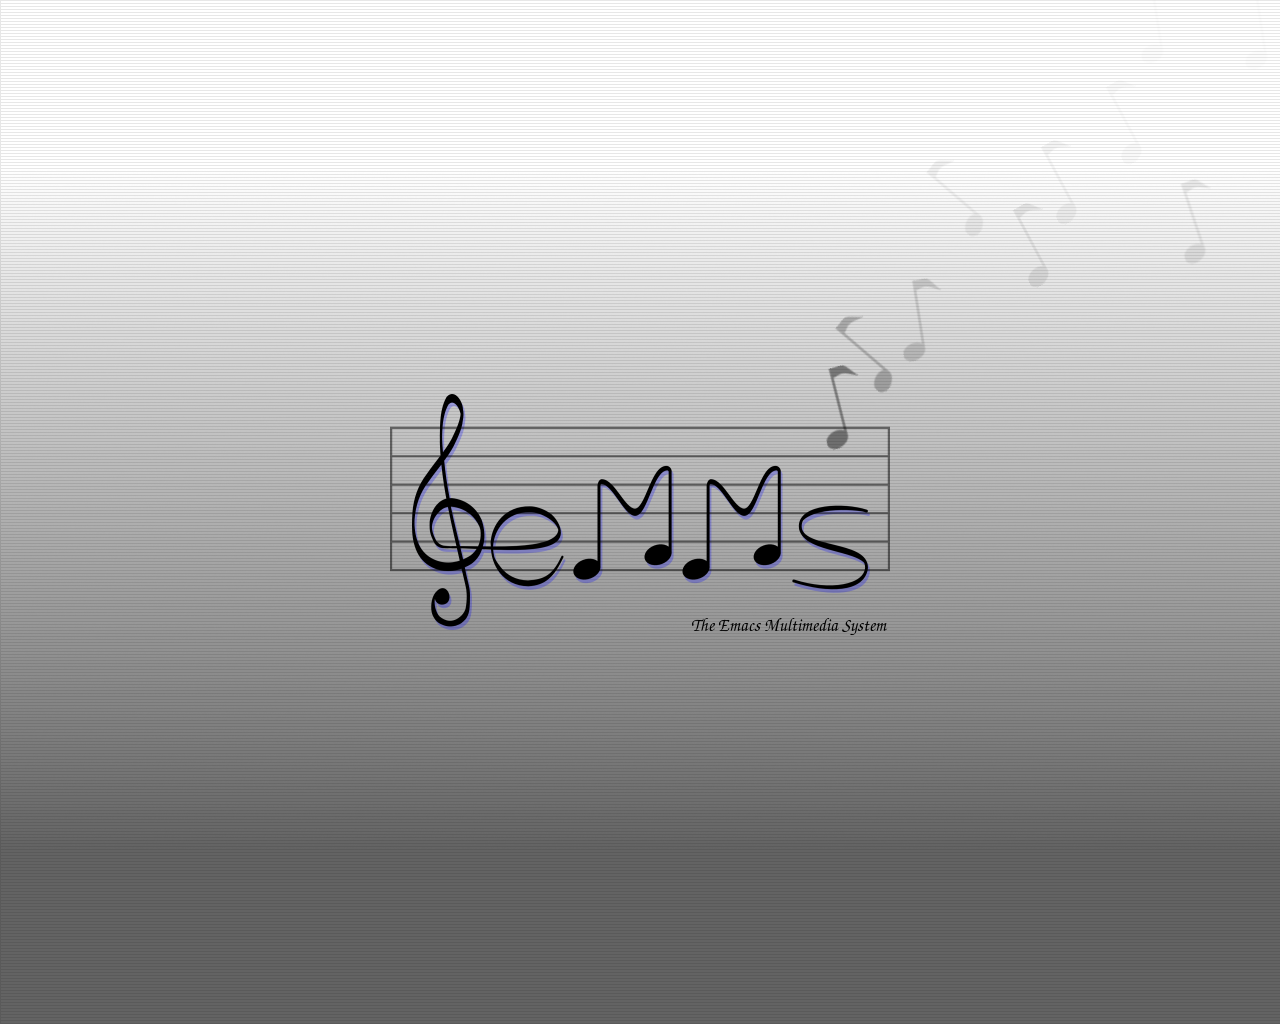 http://www.gnu.org/software/emms/logos/emms-wallpaper-large-light-grey.png